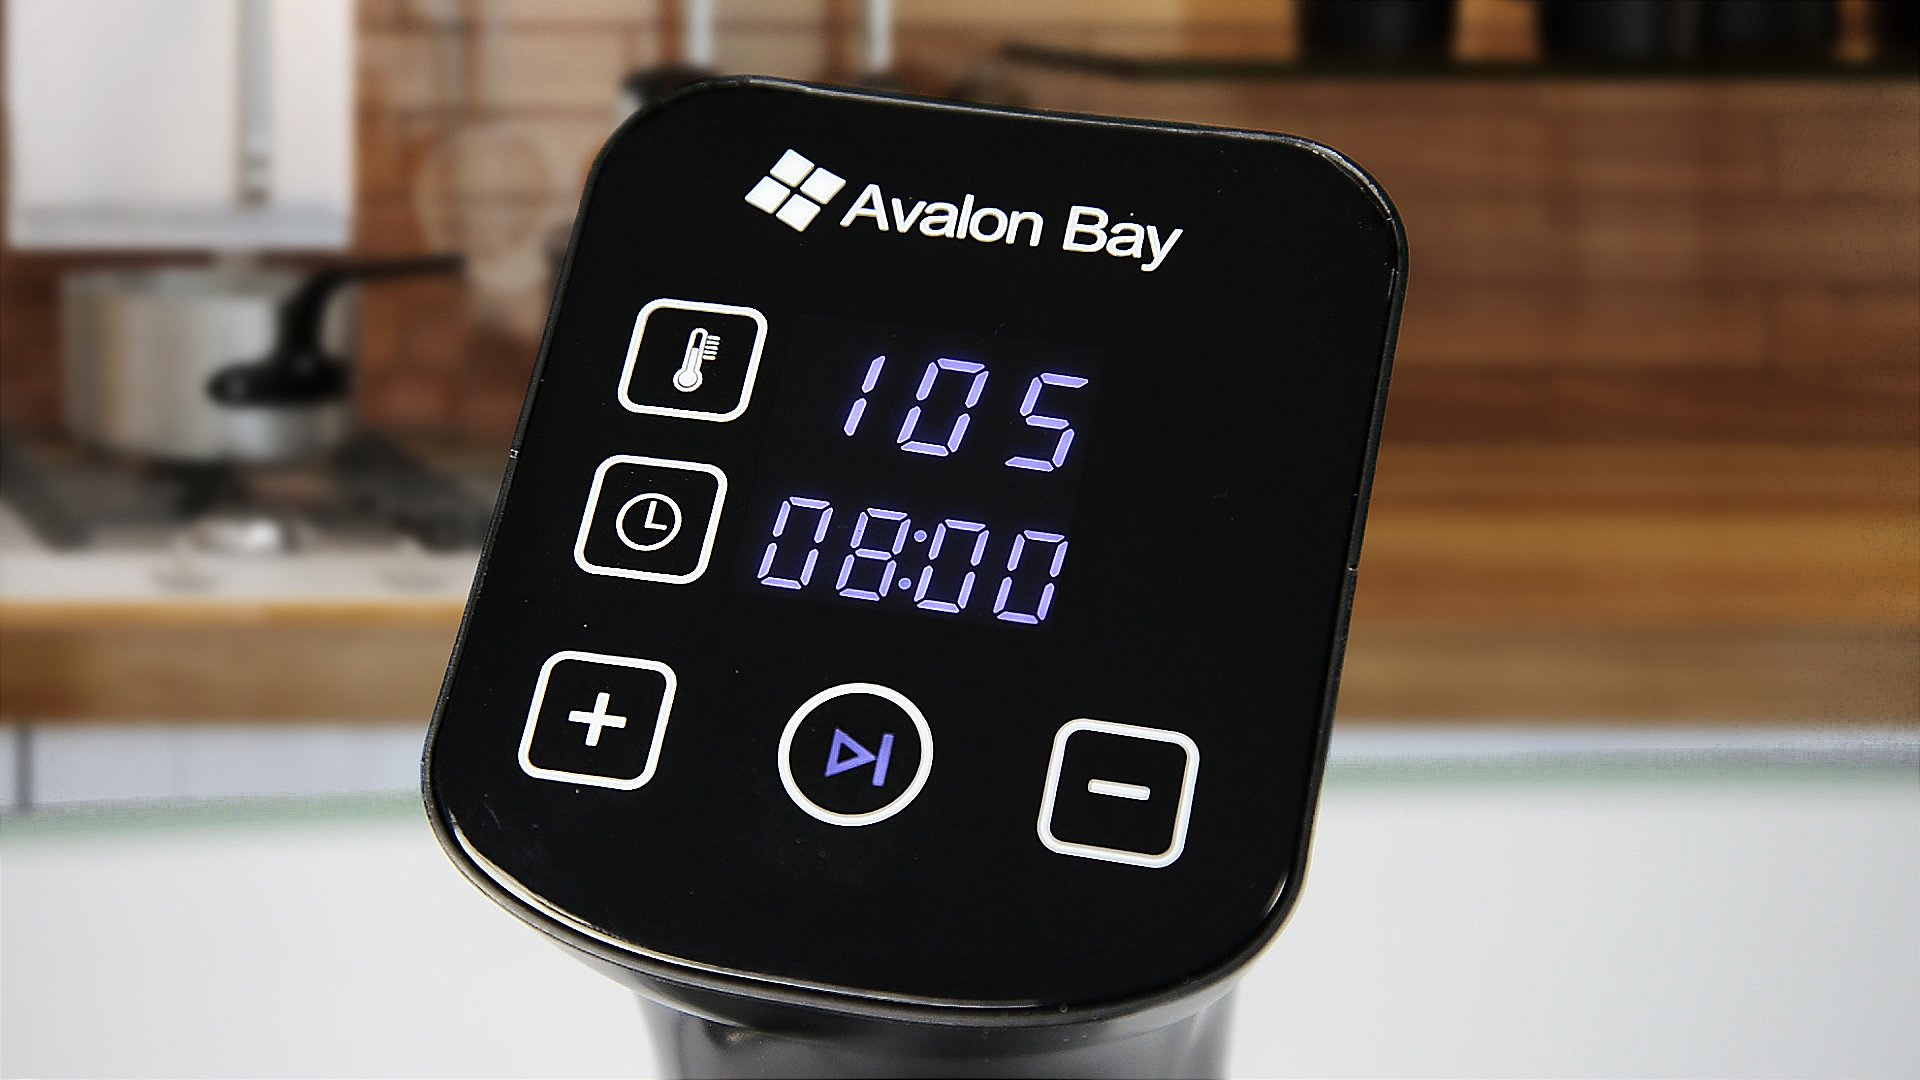 Avalon Bay Sous Vide Precision Cooker